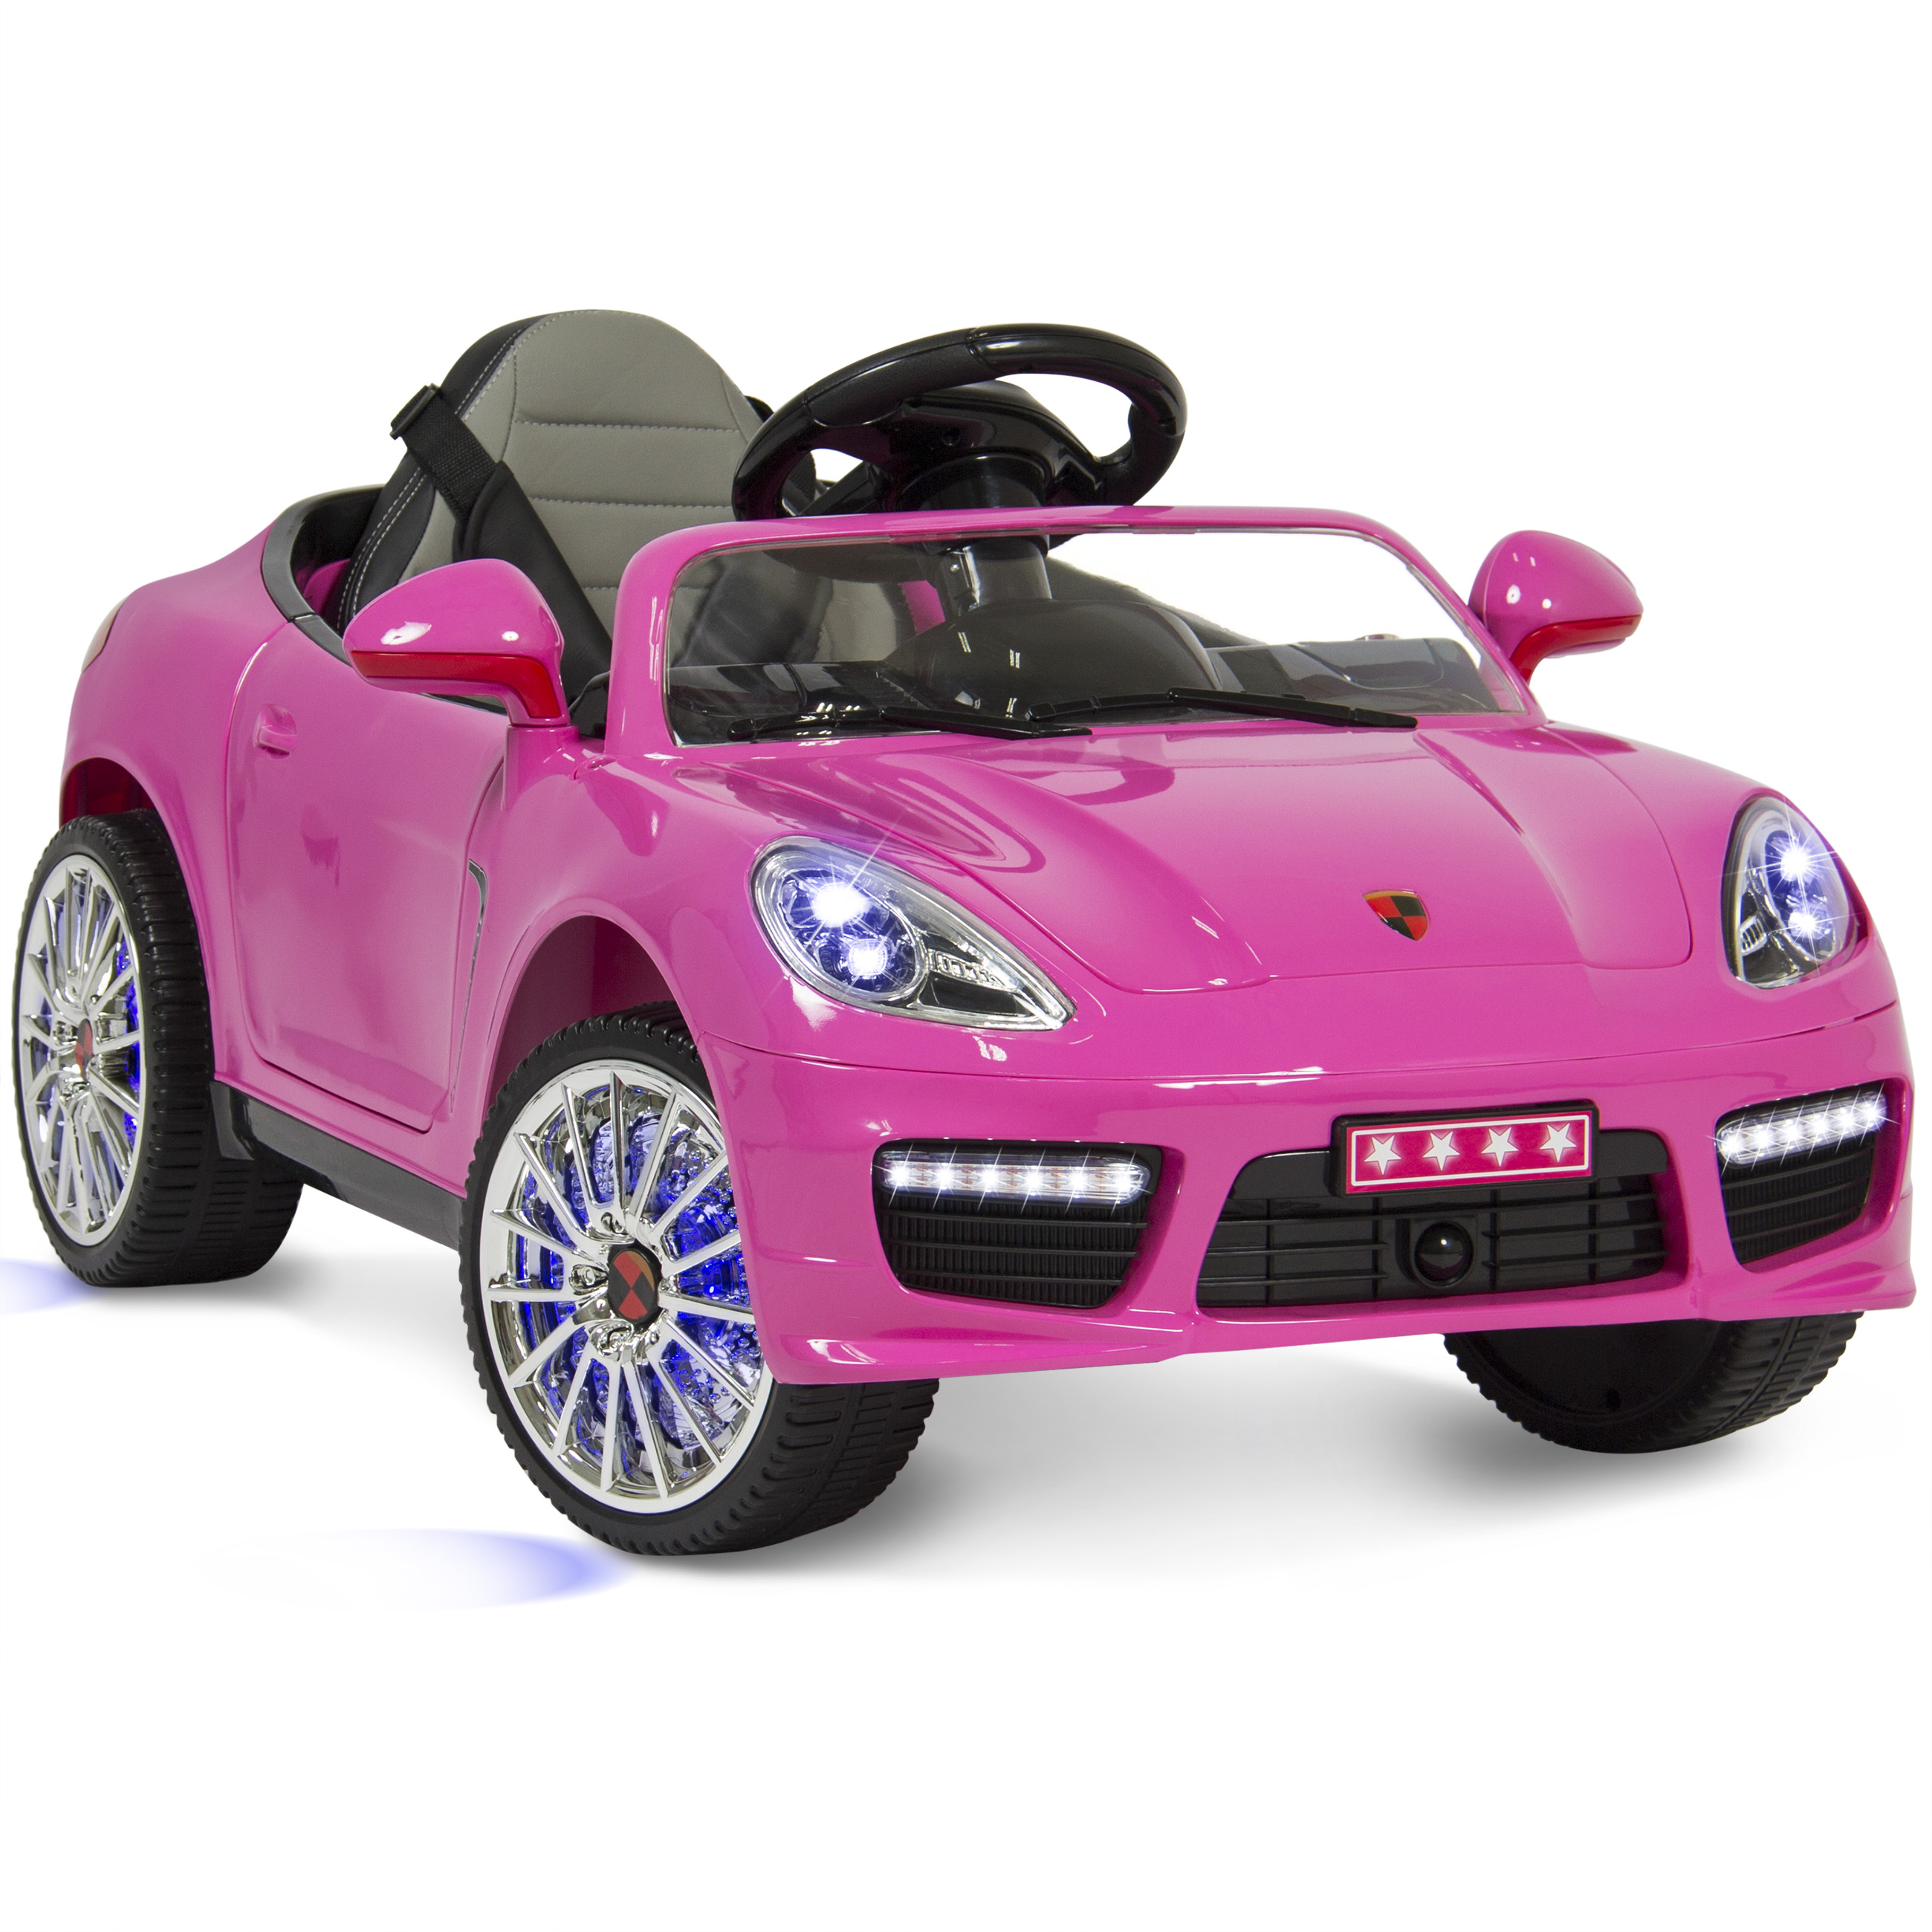 Best Choice Products Kids 12V Ride On Sports Car Style W/ Hydraulics, Remote Control, 2 Speeds, LED Lights